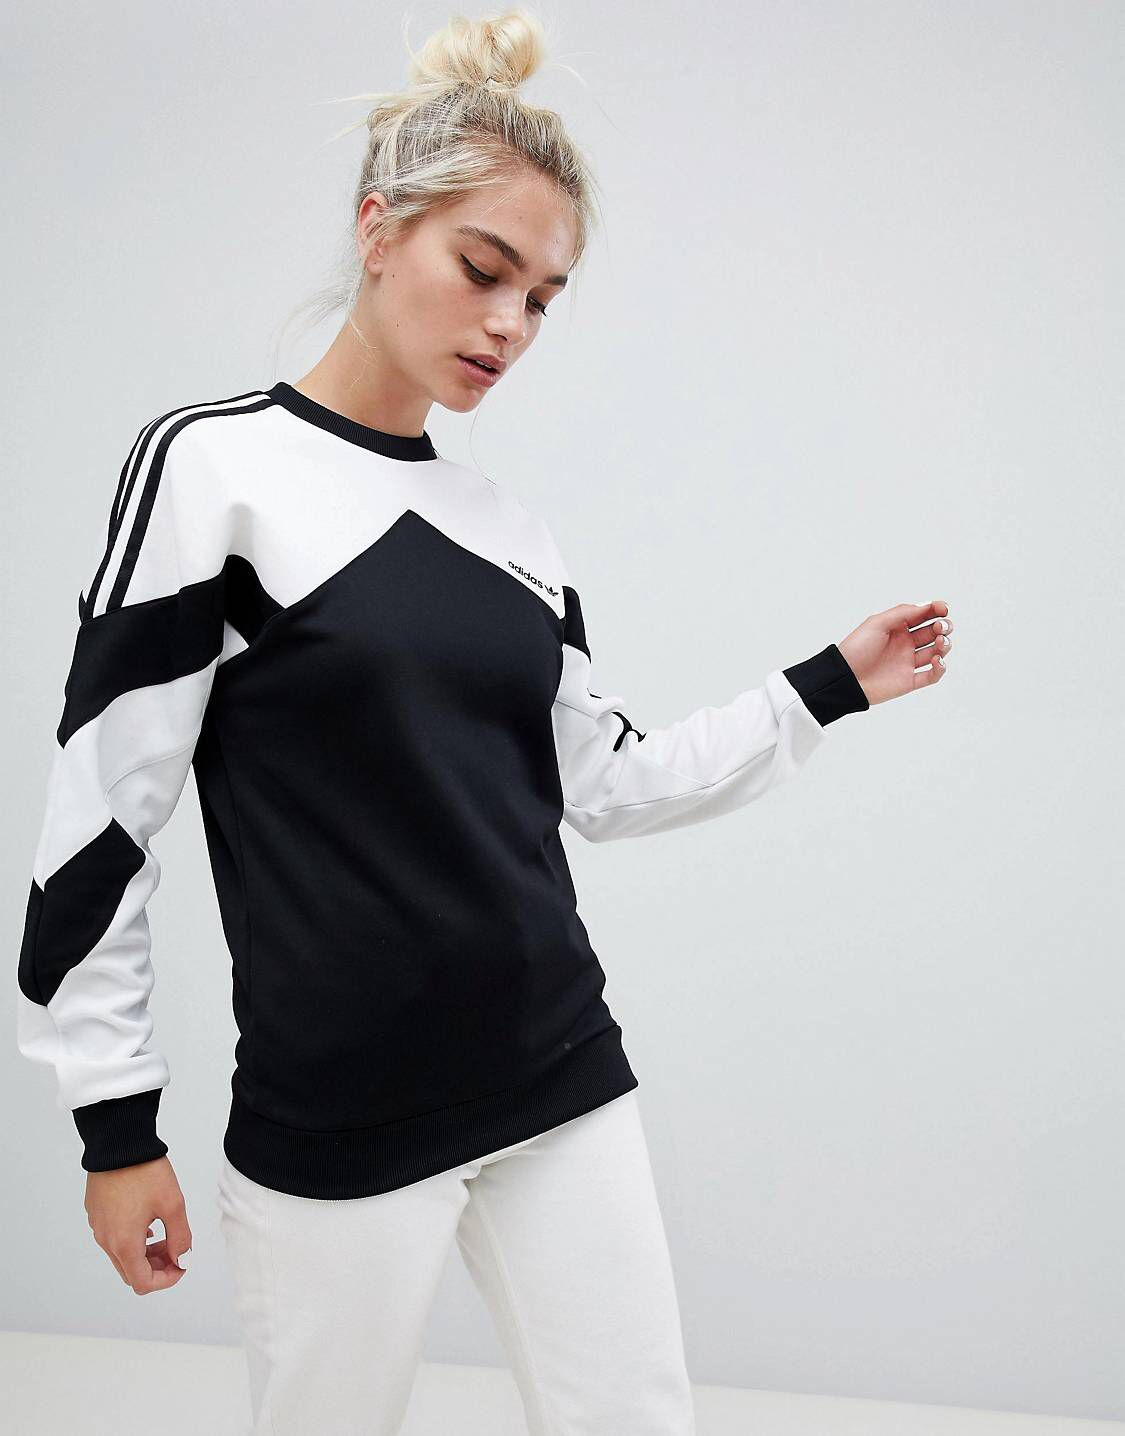 cbc6af816972b adidas Originals Authentic Sweatshirt With Contrast Panel In White And Black